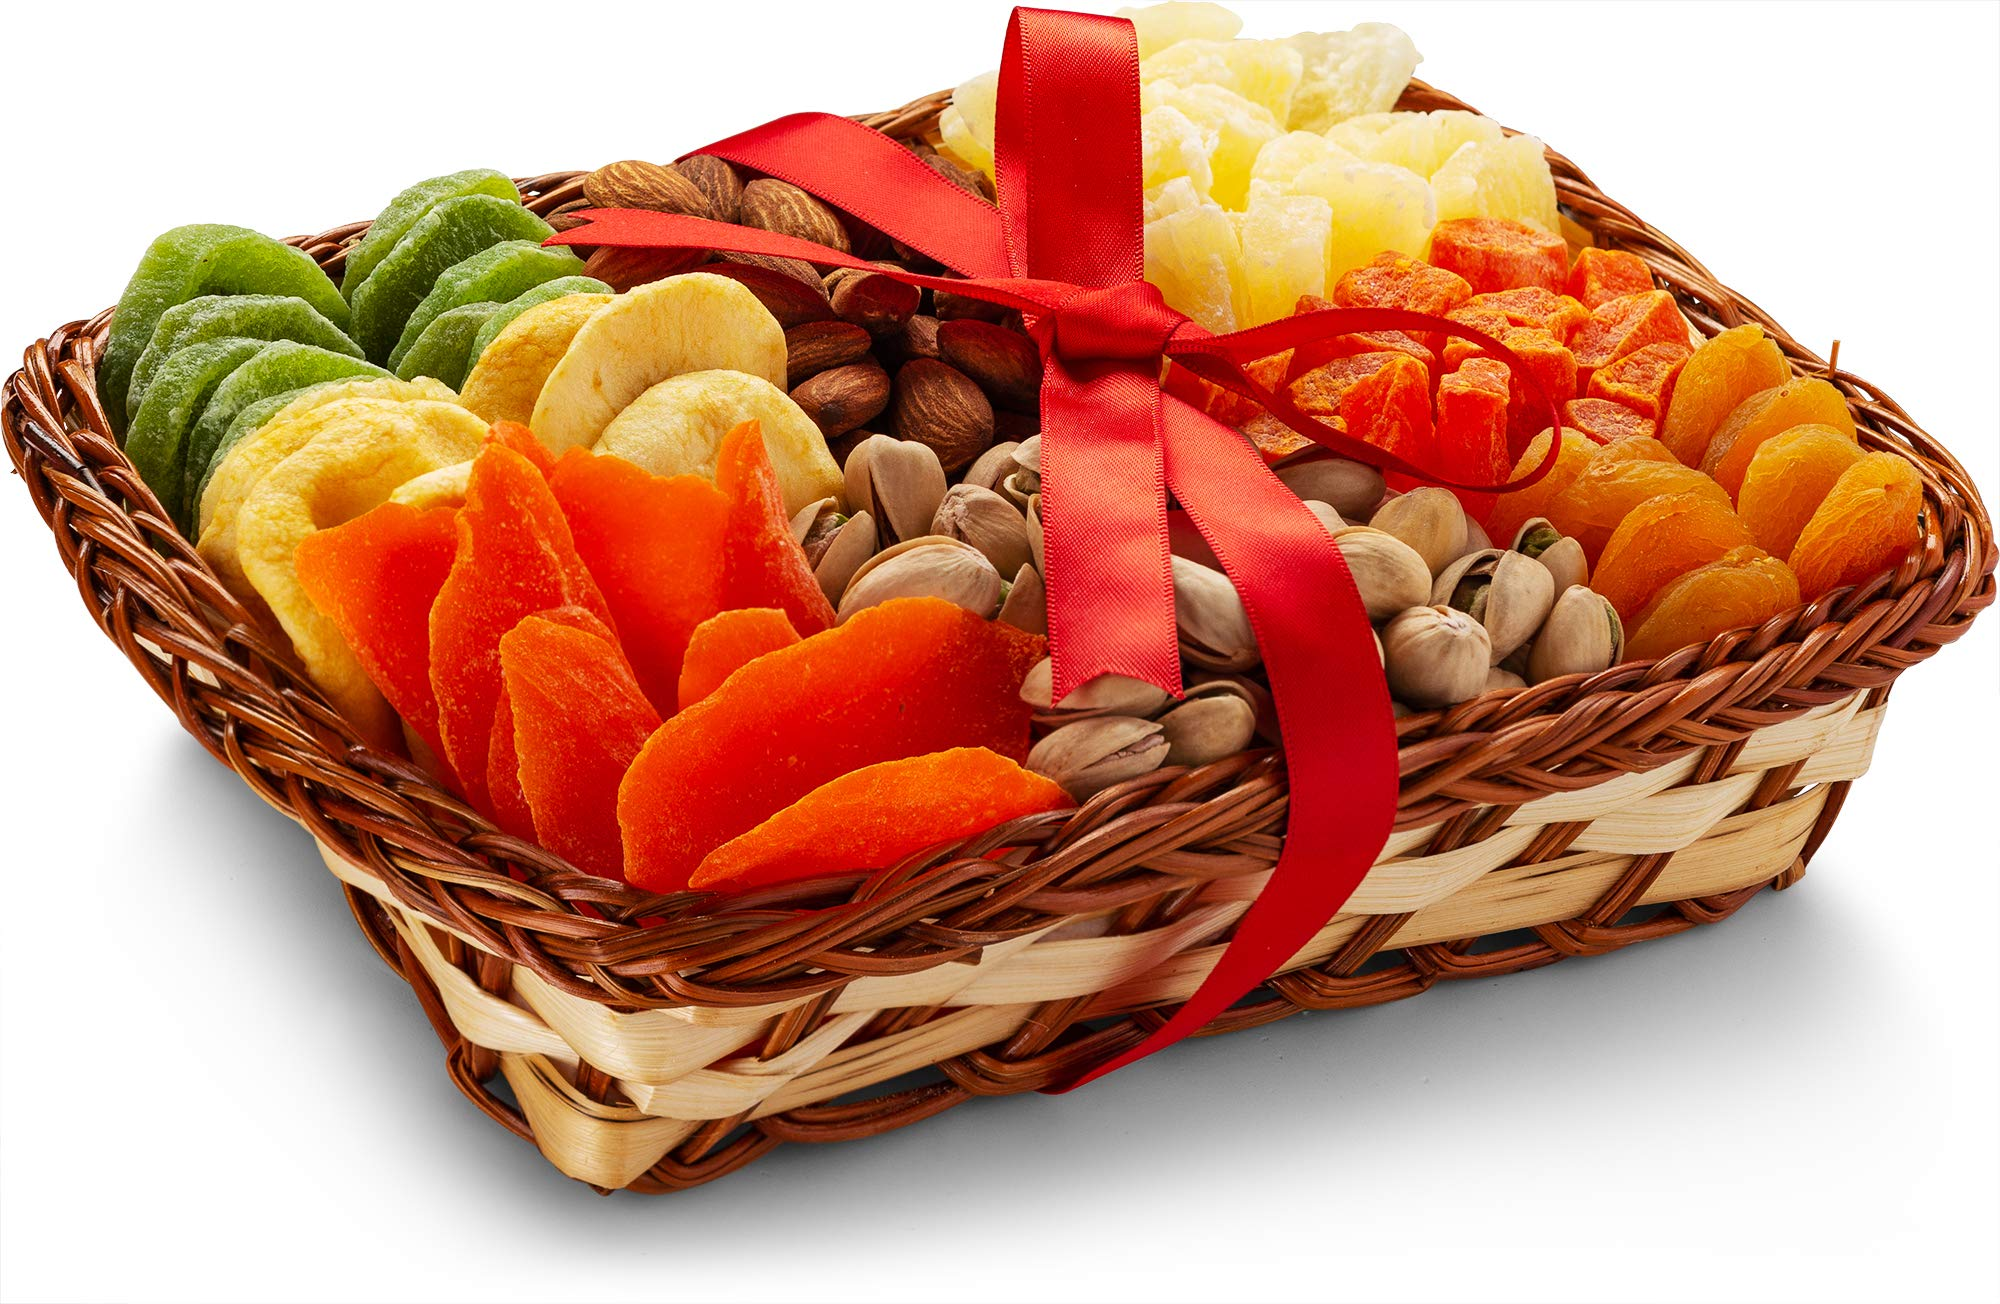 Holiday Nut and Dried Fruit Gift Basket, Healthy Gourmet Snack Christmas Food Box, Great for Birthday, Sympathy, Family Parties & Movie Night or as a Corporate Tray-Sweet Choice